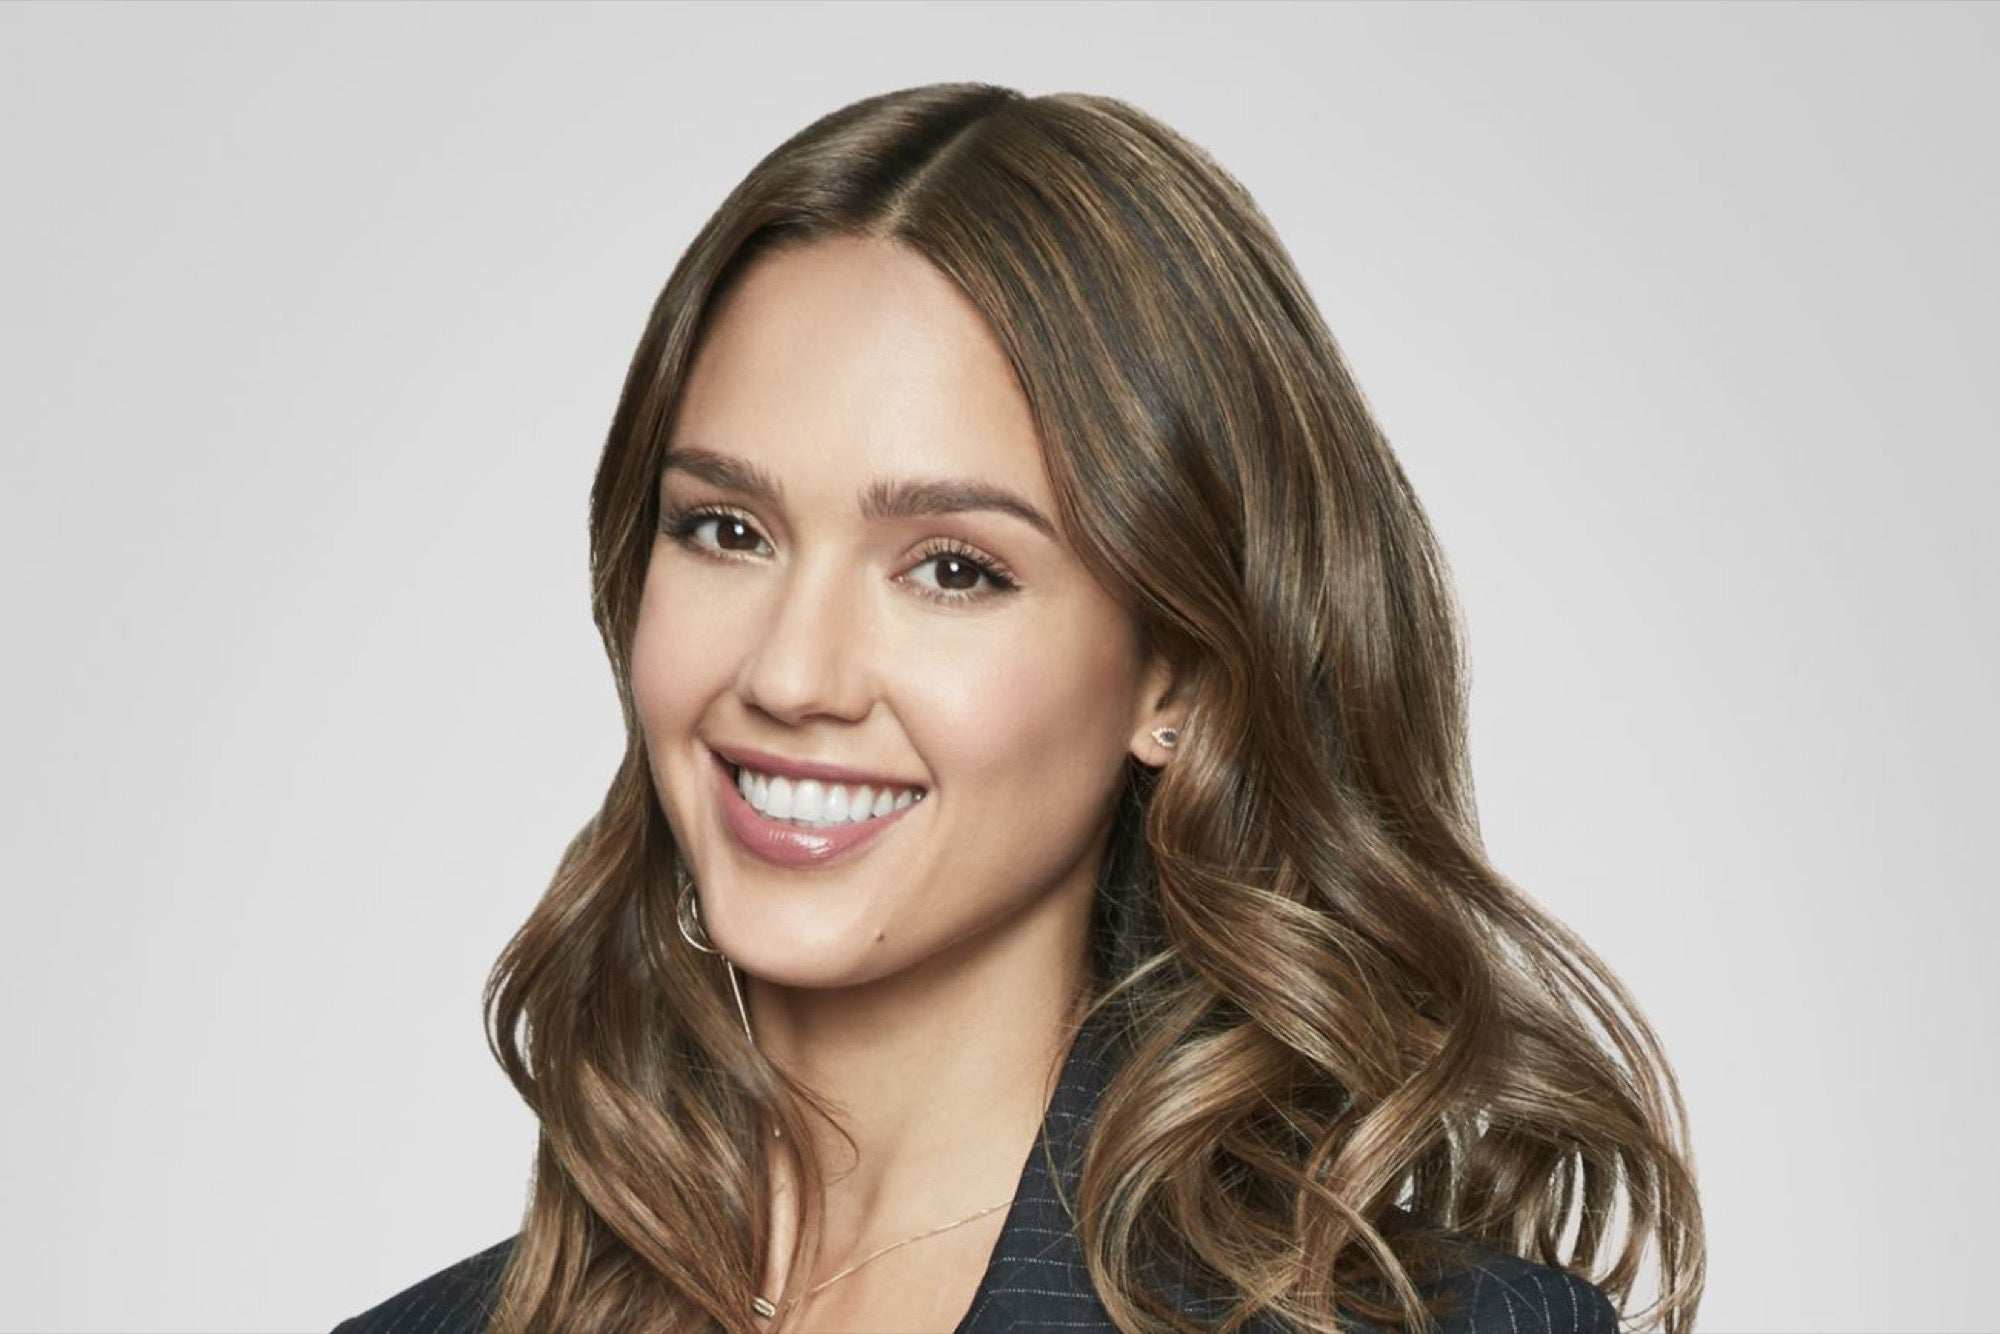 JESSICA ALBA Beautiful Smile In The World